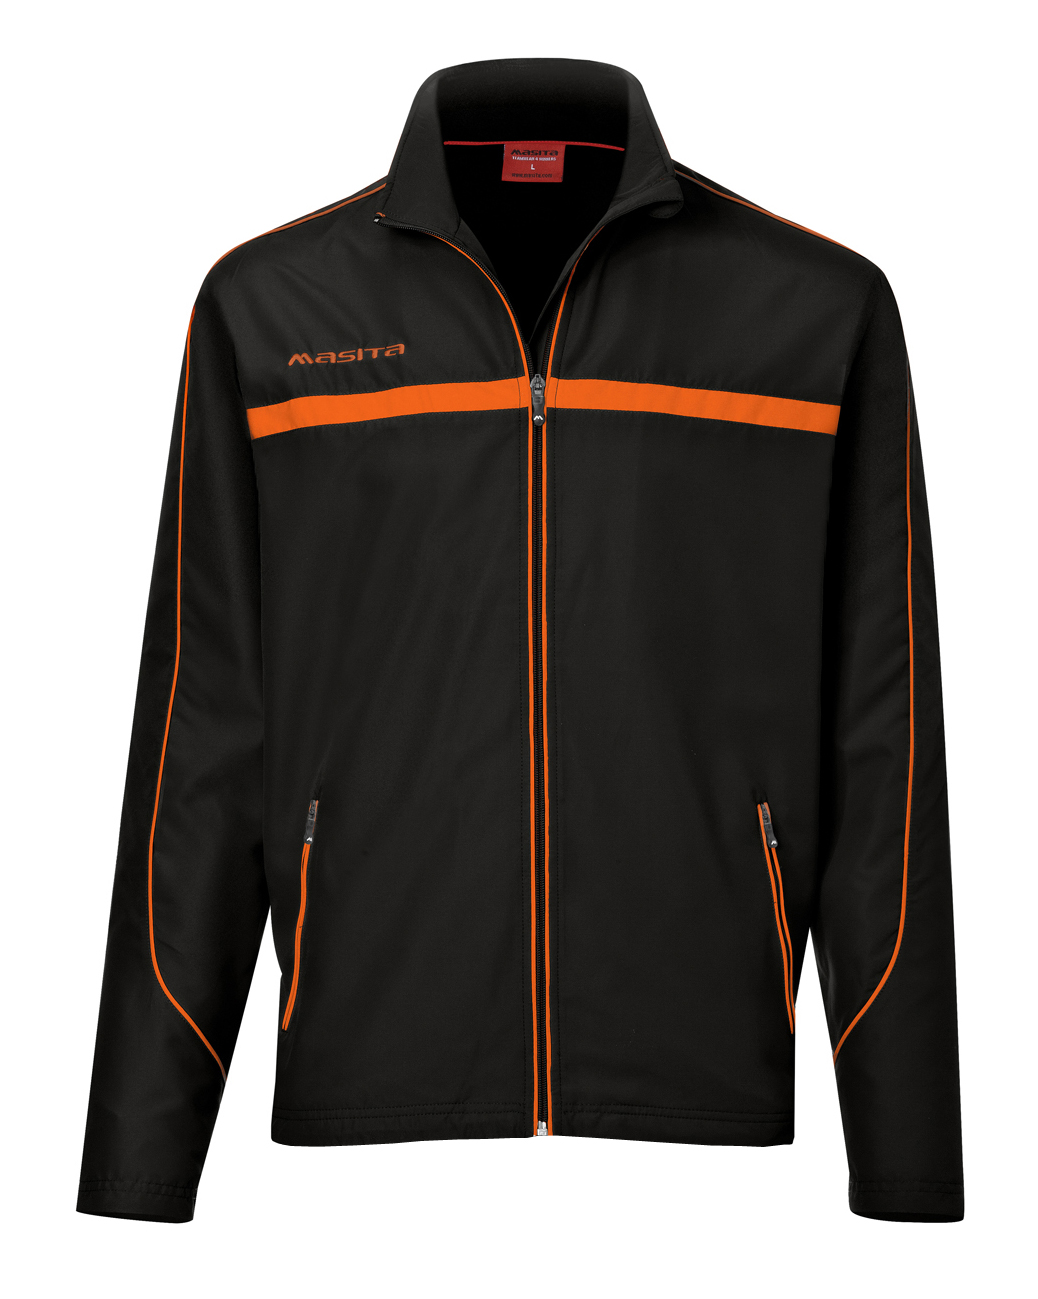 Presentation Jacket Brasil  Black / Orange